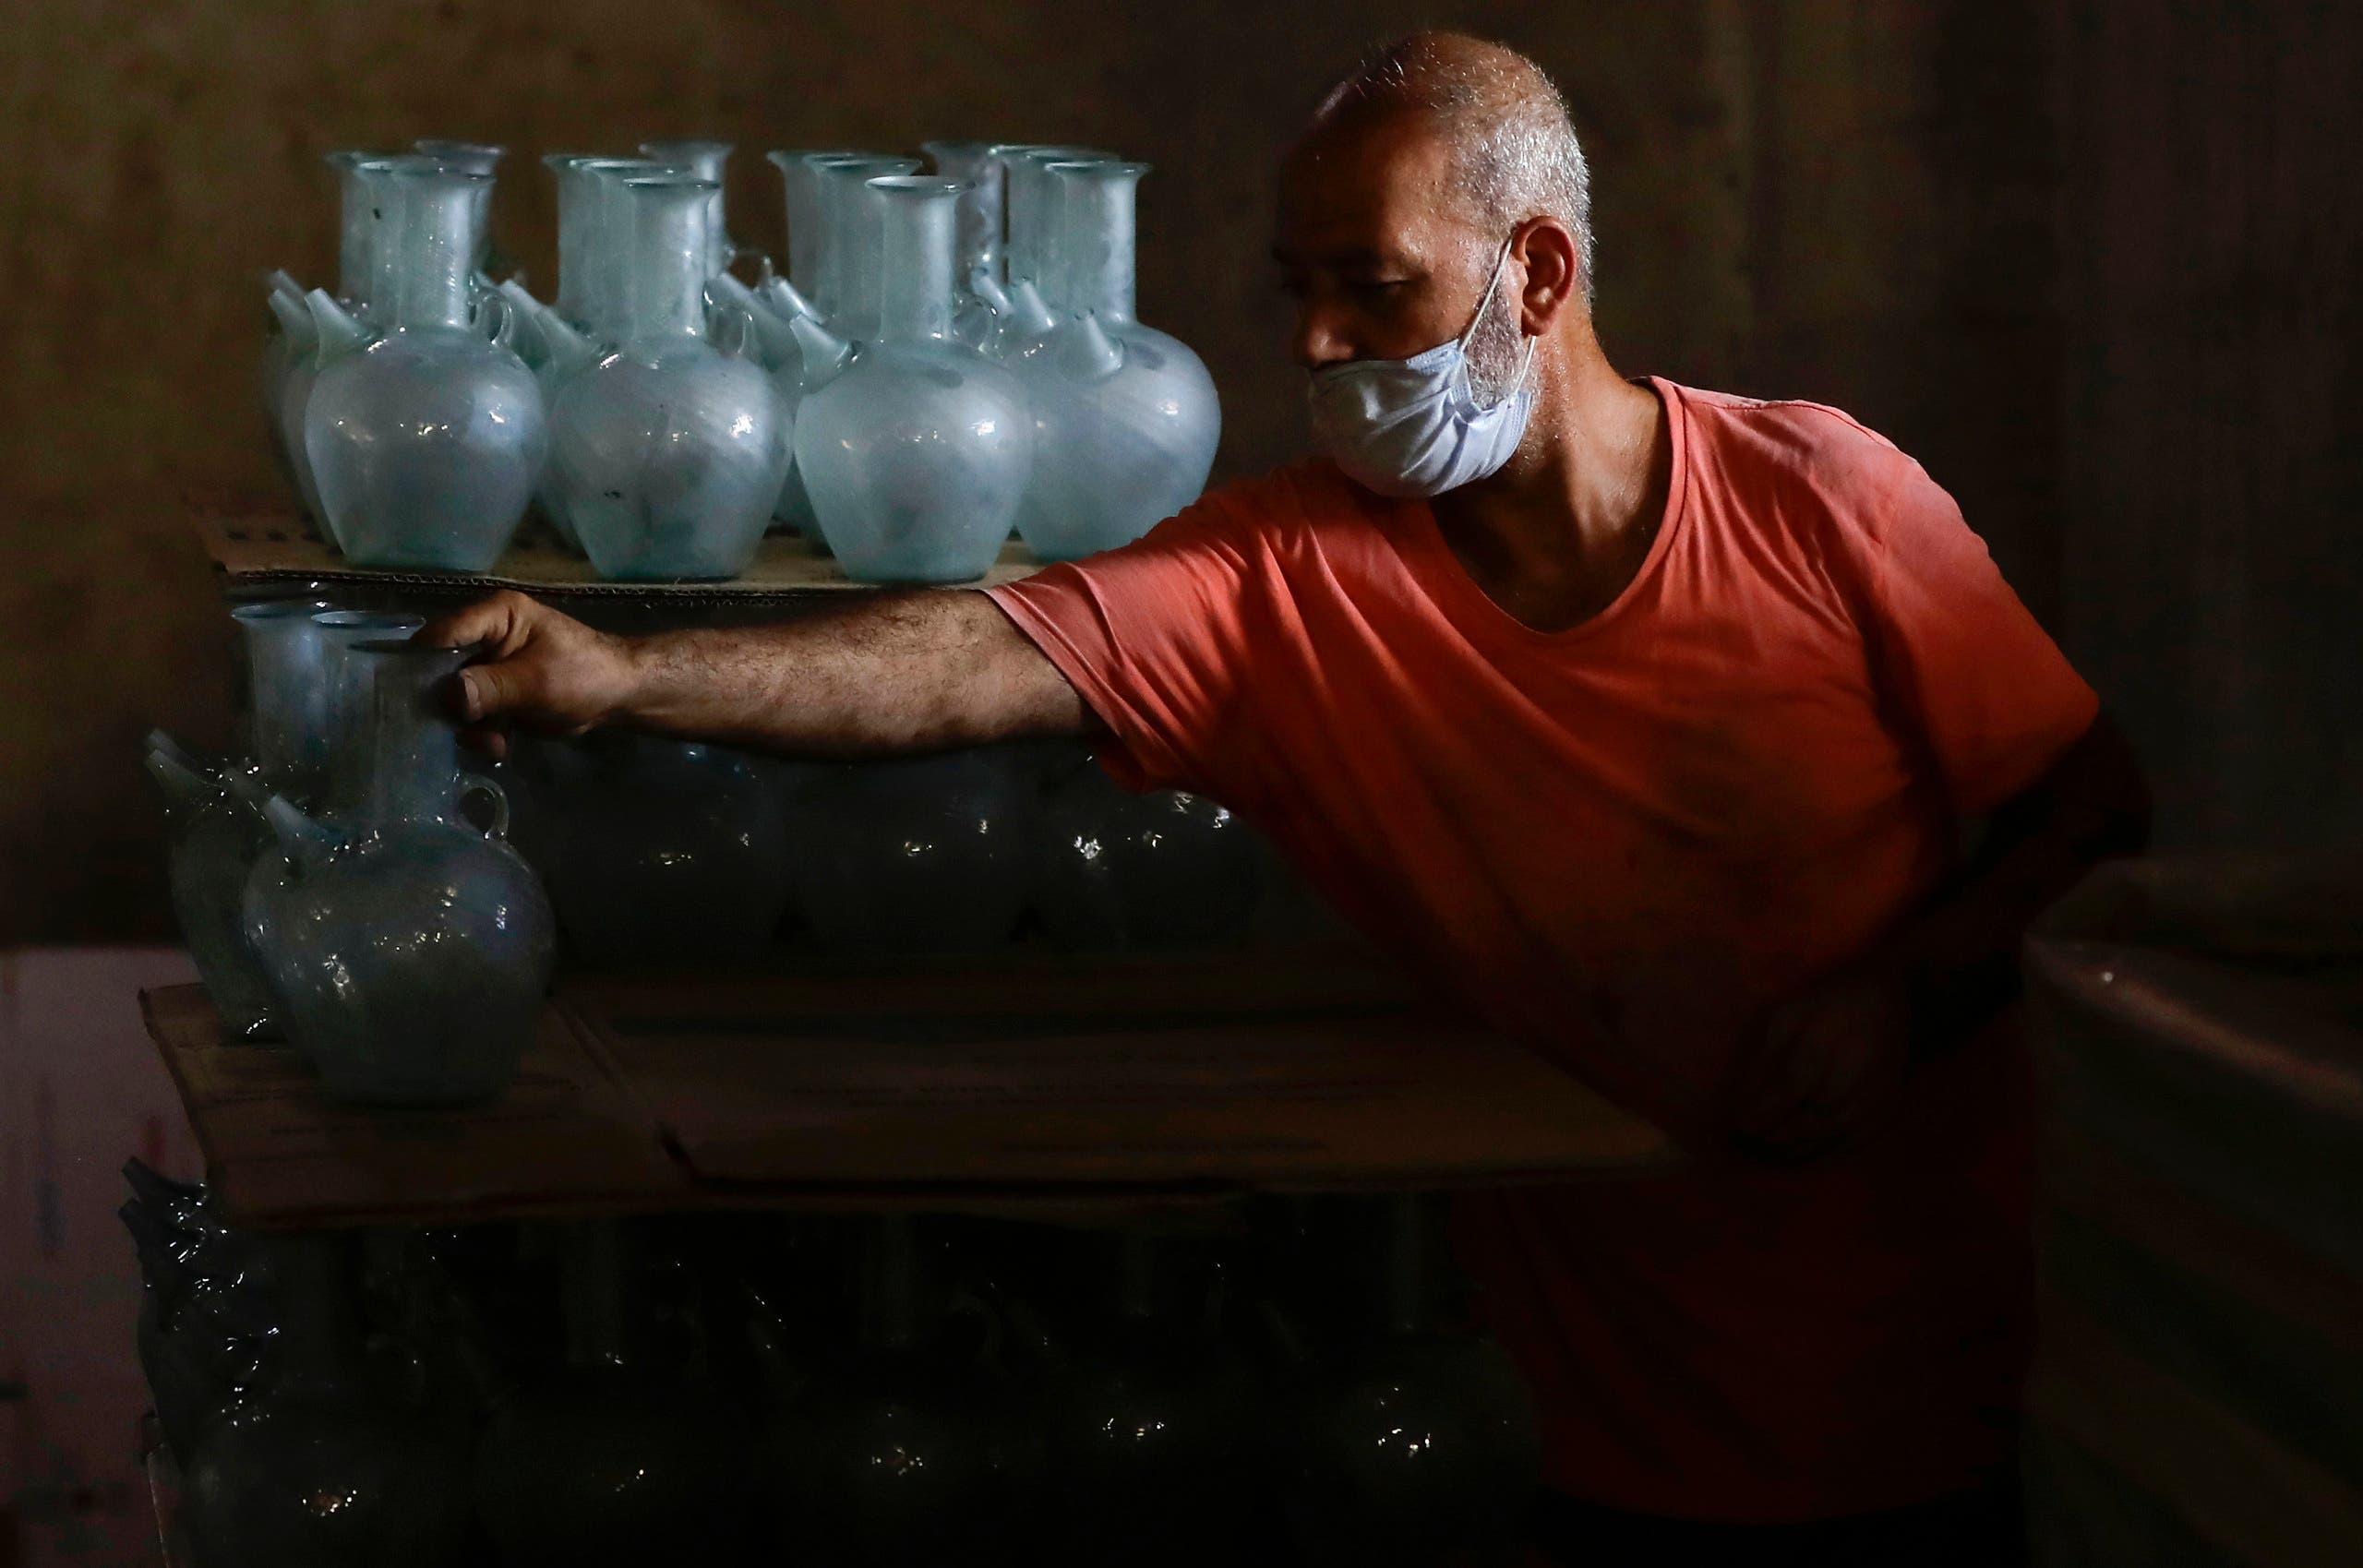 A worker arranges finished jugs at a factory, which is recycling the broken glass as a result of the Beirut explosion, in the northern Lebanese port city of Tripoli on August 25, 2020. (AFP)